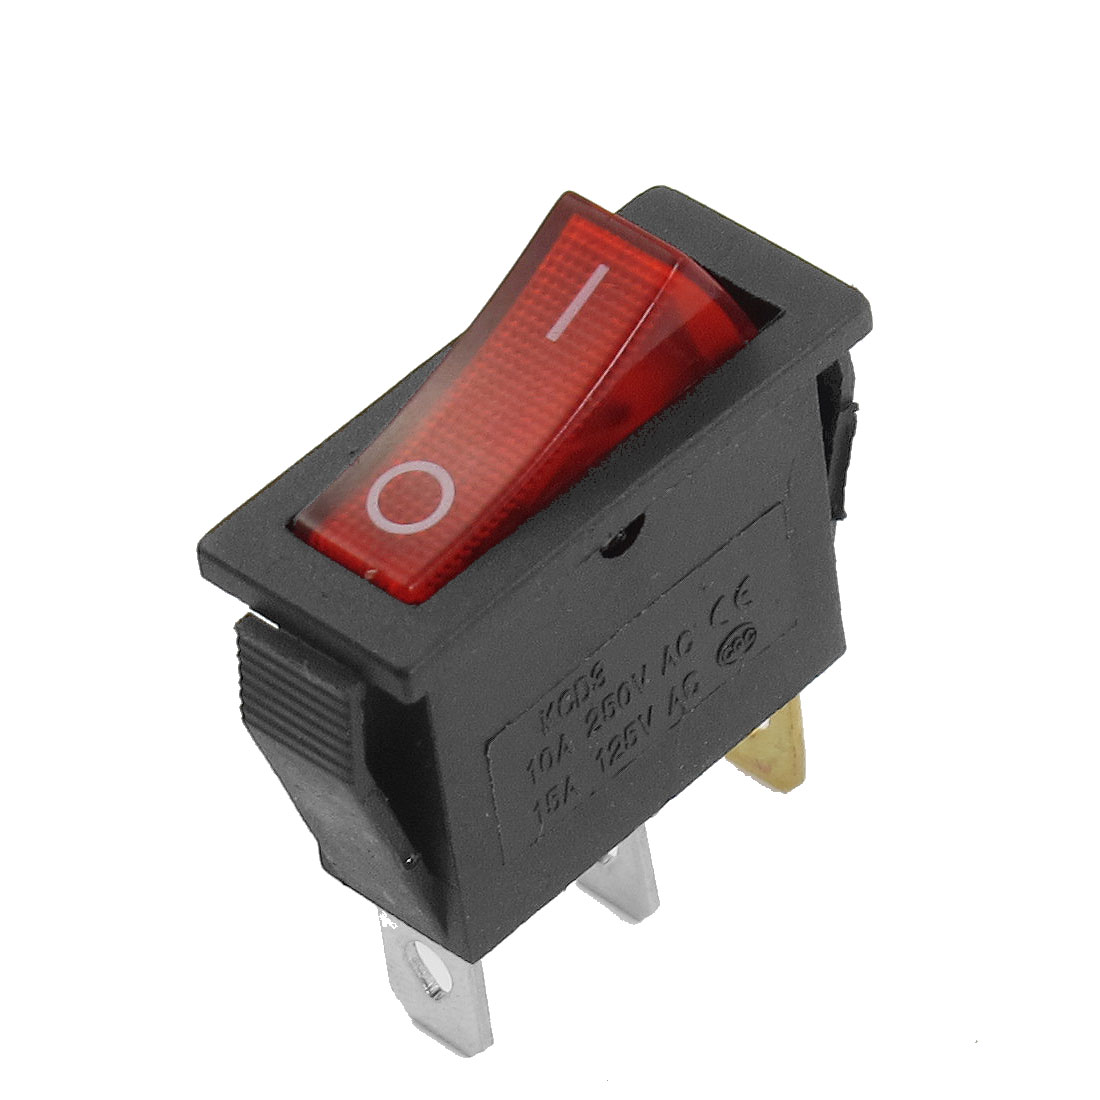 SPDT 2 Position 3 Pins AC 10A/250V 15A/125V Snap in Boat Rocker Switch